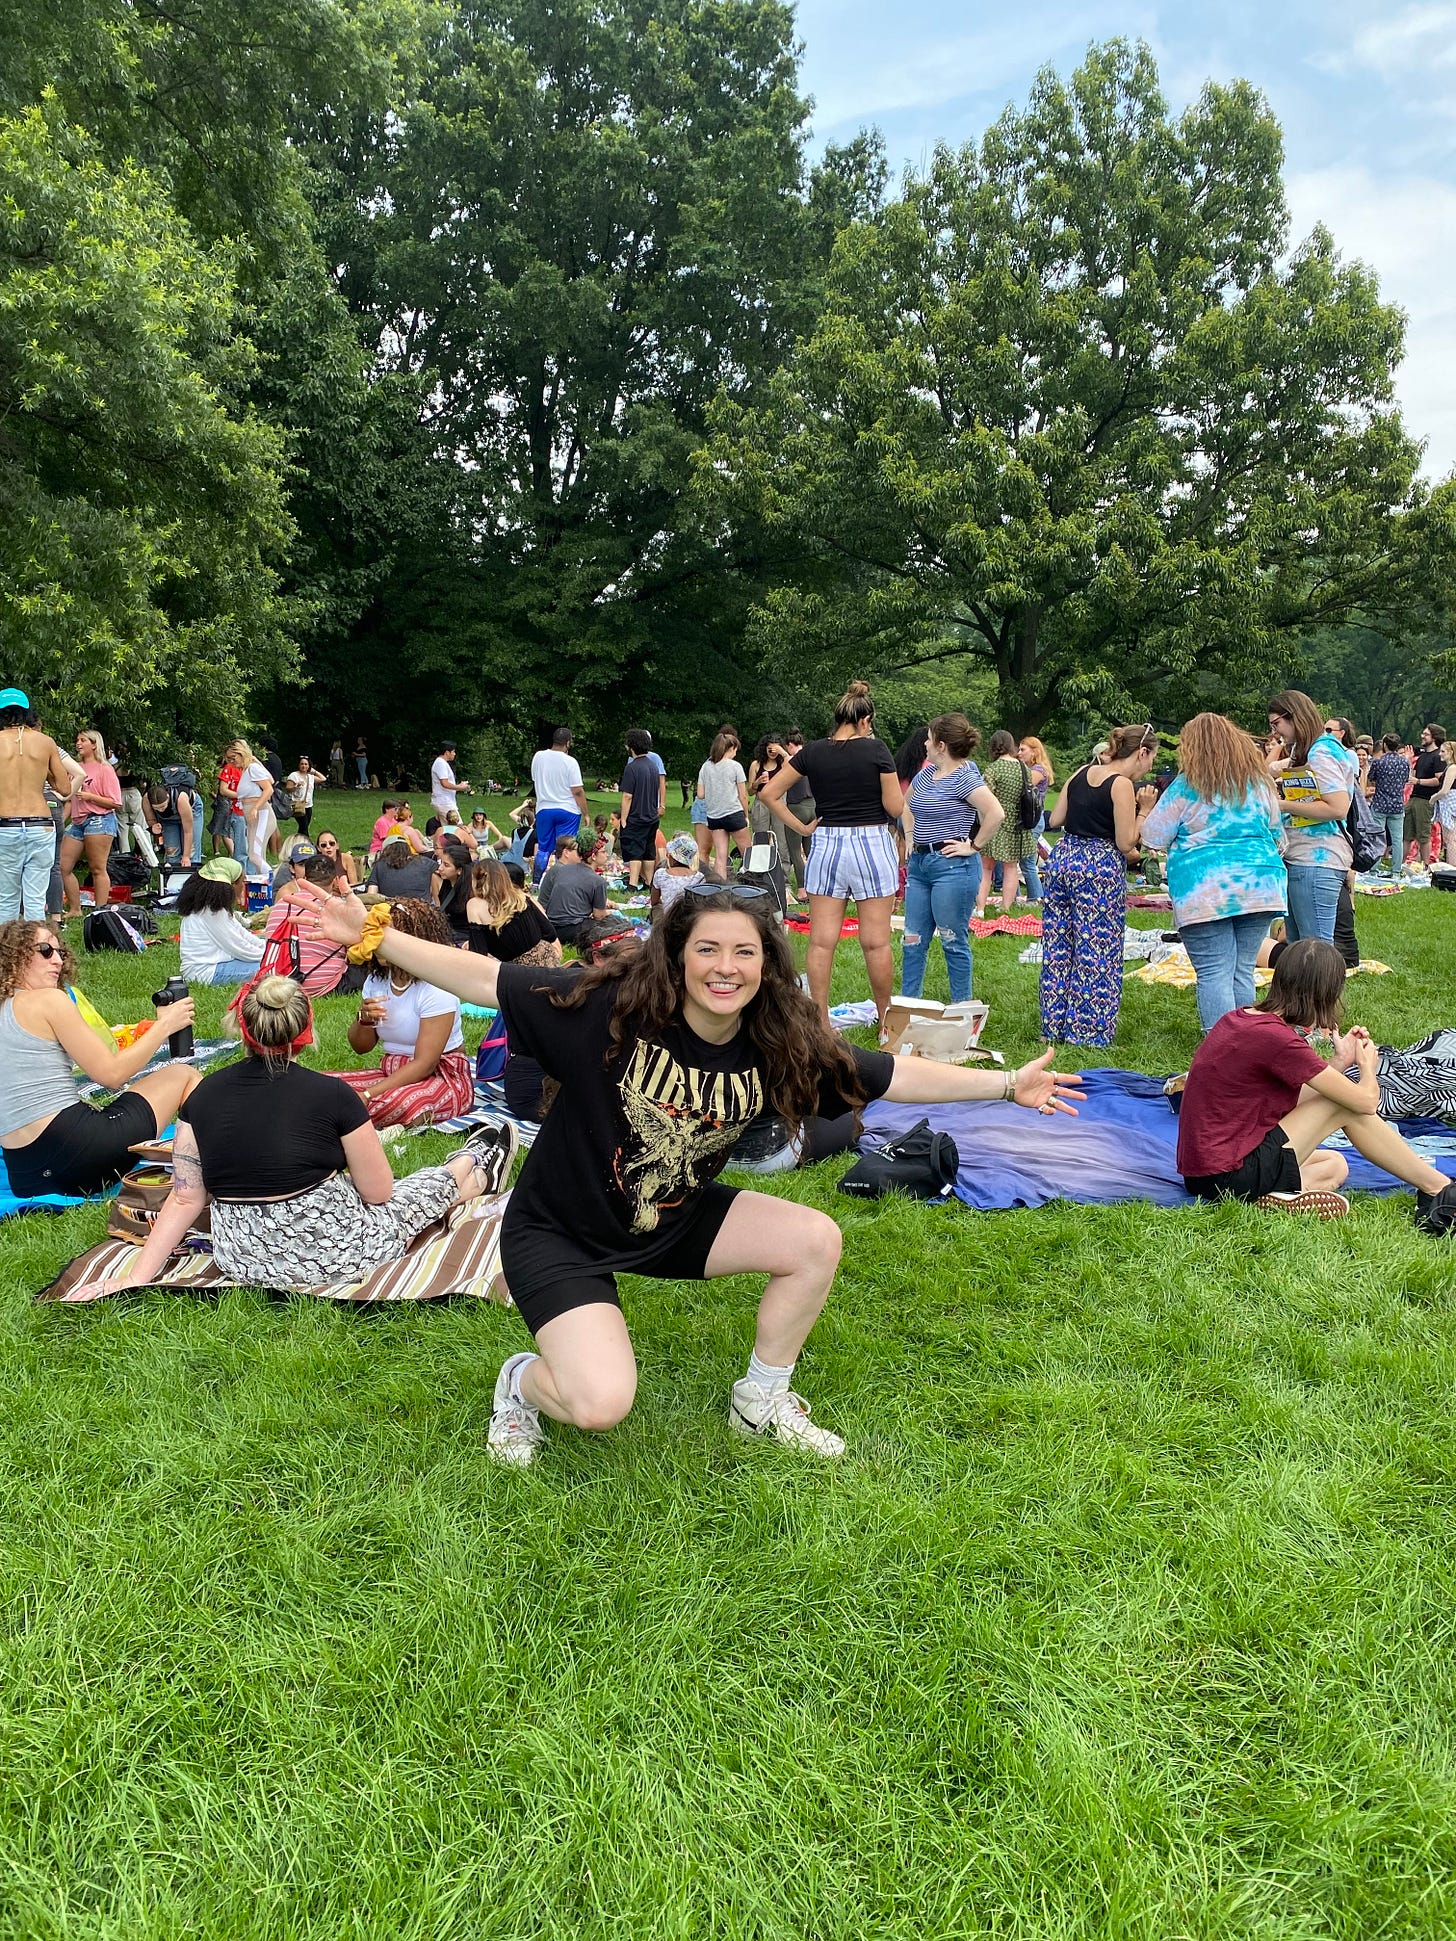 Meizz at her meet-up in Central Park on July 11